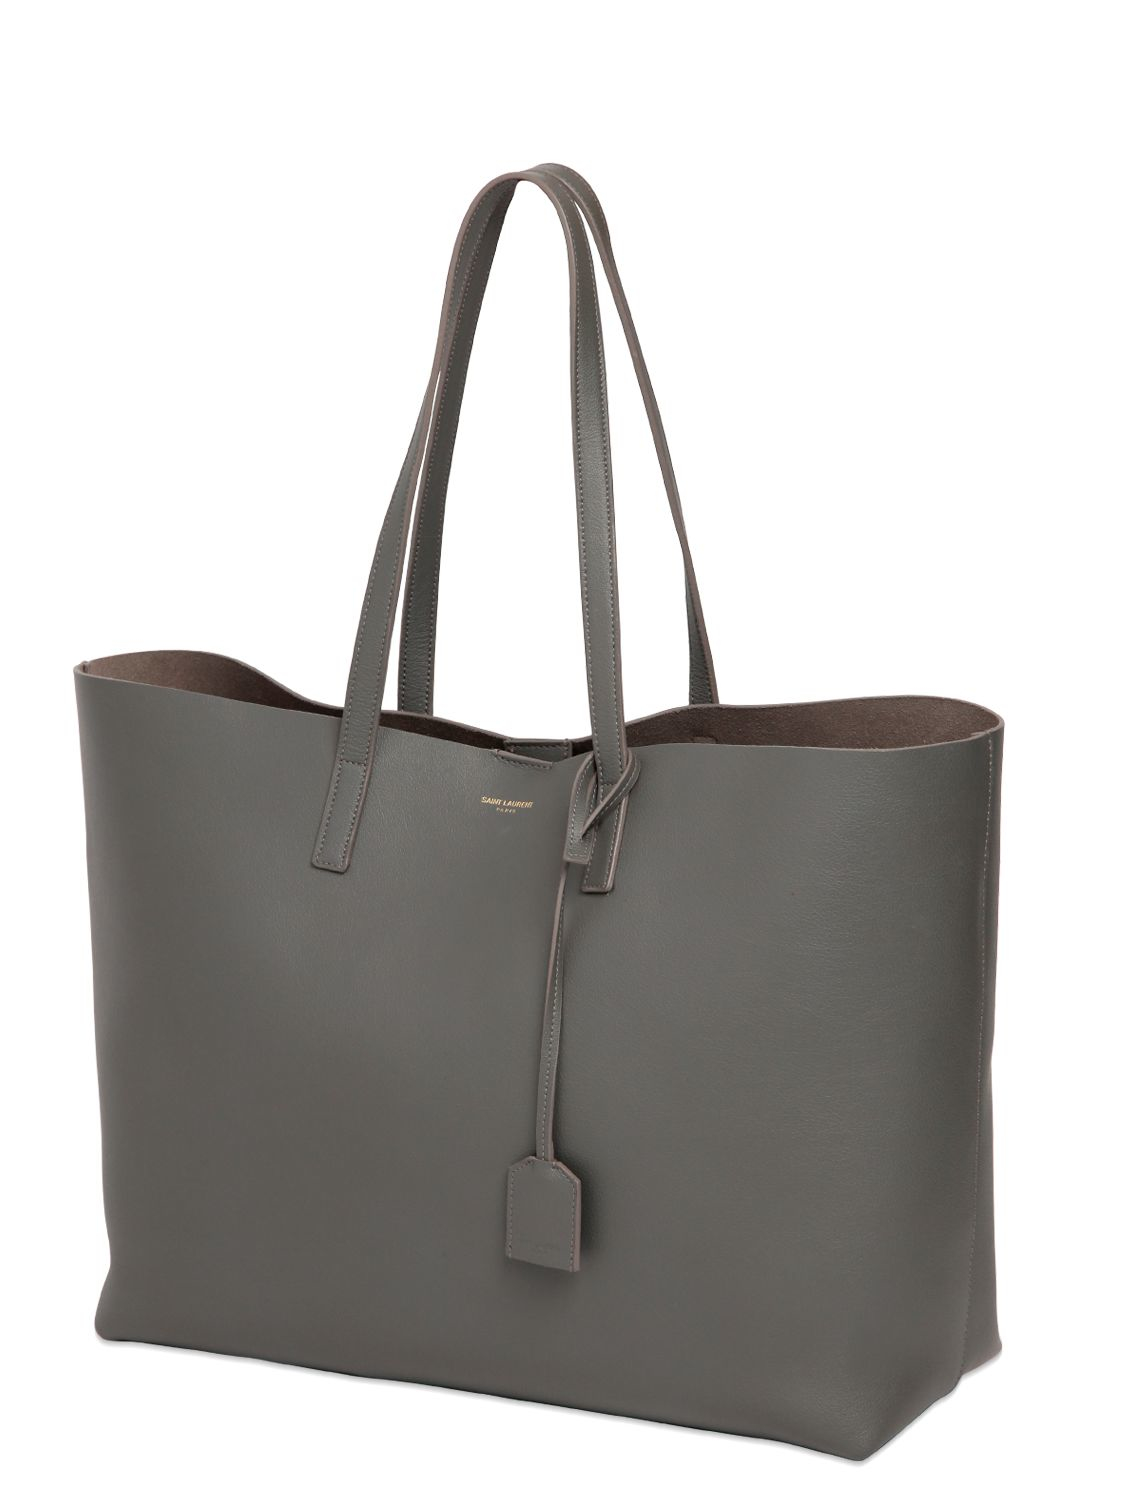 Lyst Saint Laurent Soft Leather Tote Bag In Gray